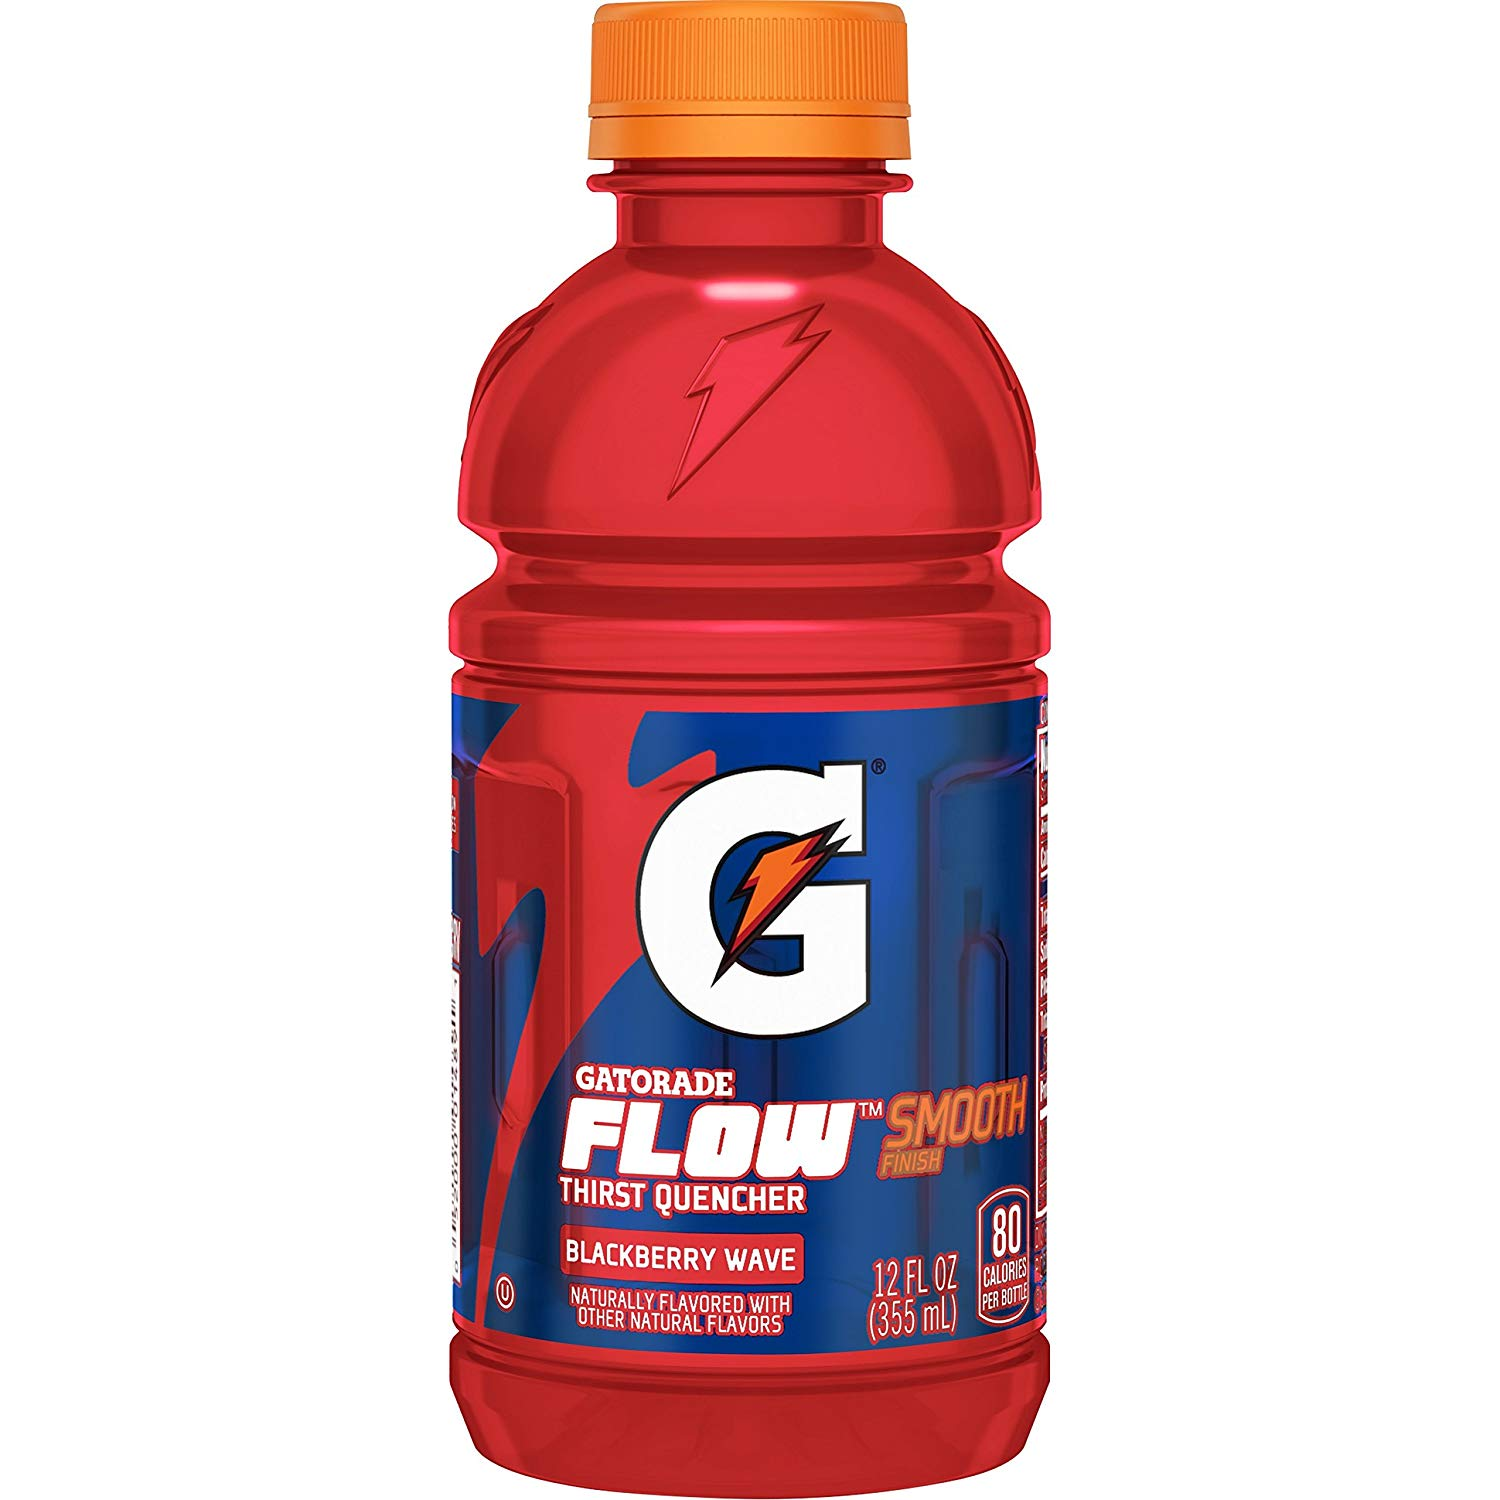 Gatorade Bottle Drawing